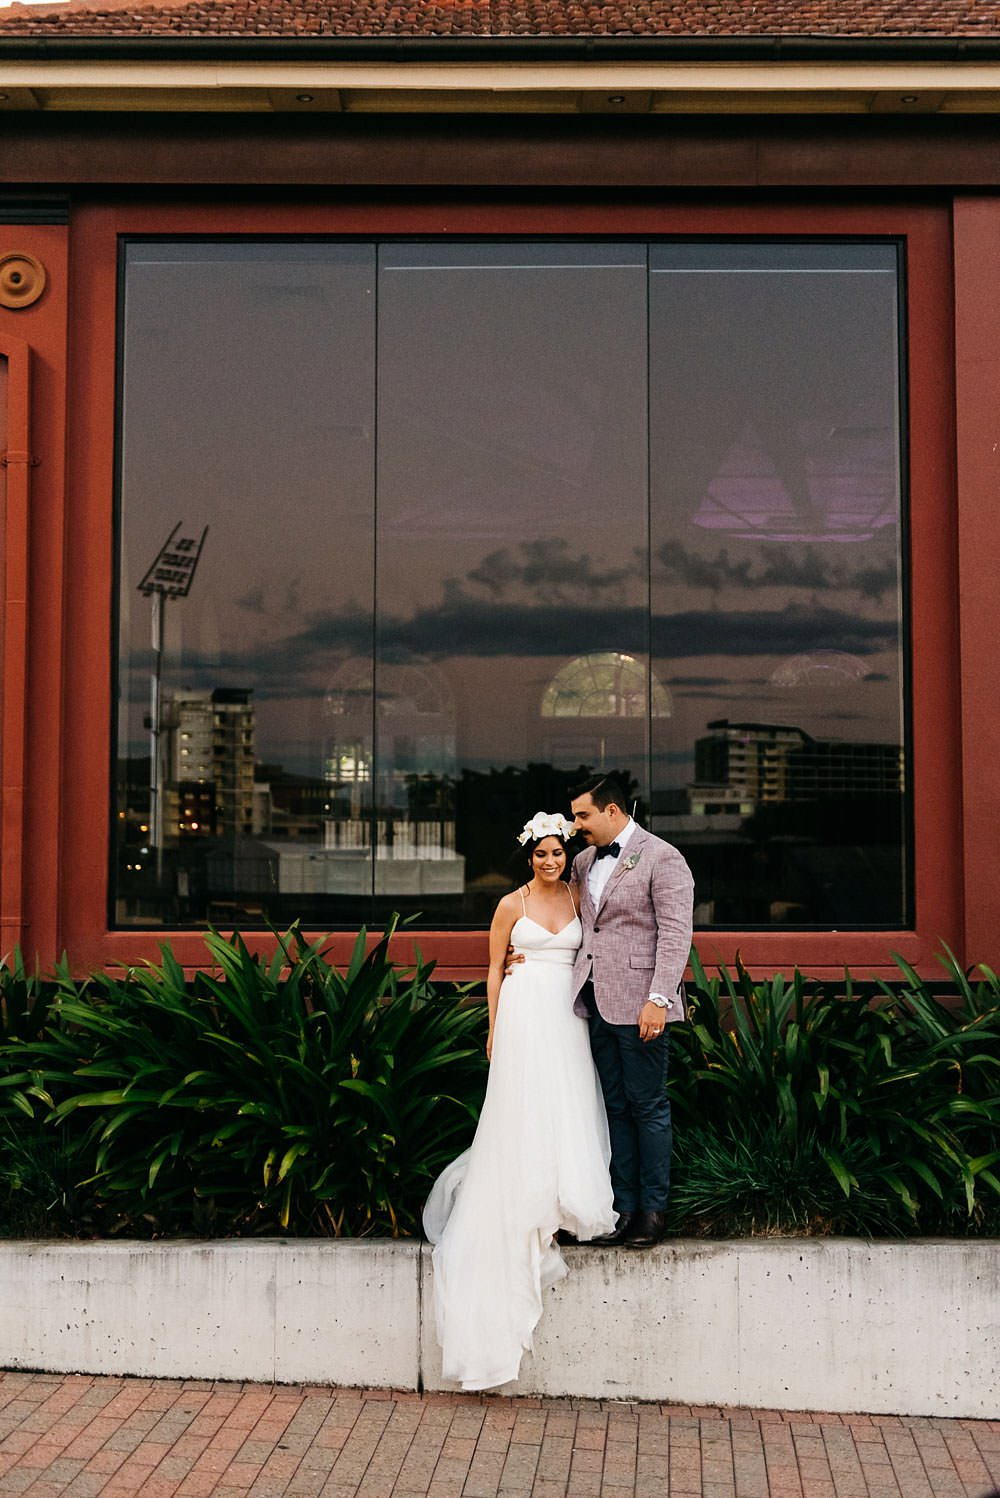 lightspace-brisbane-wedding-photographer-58.jpg